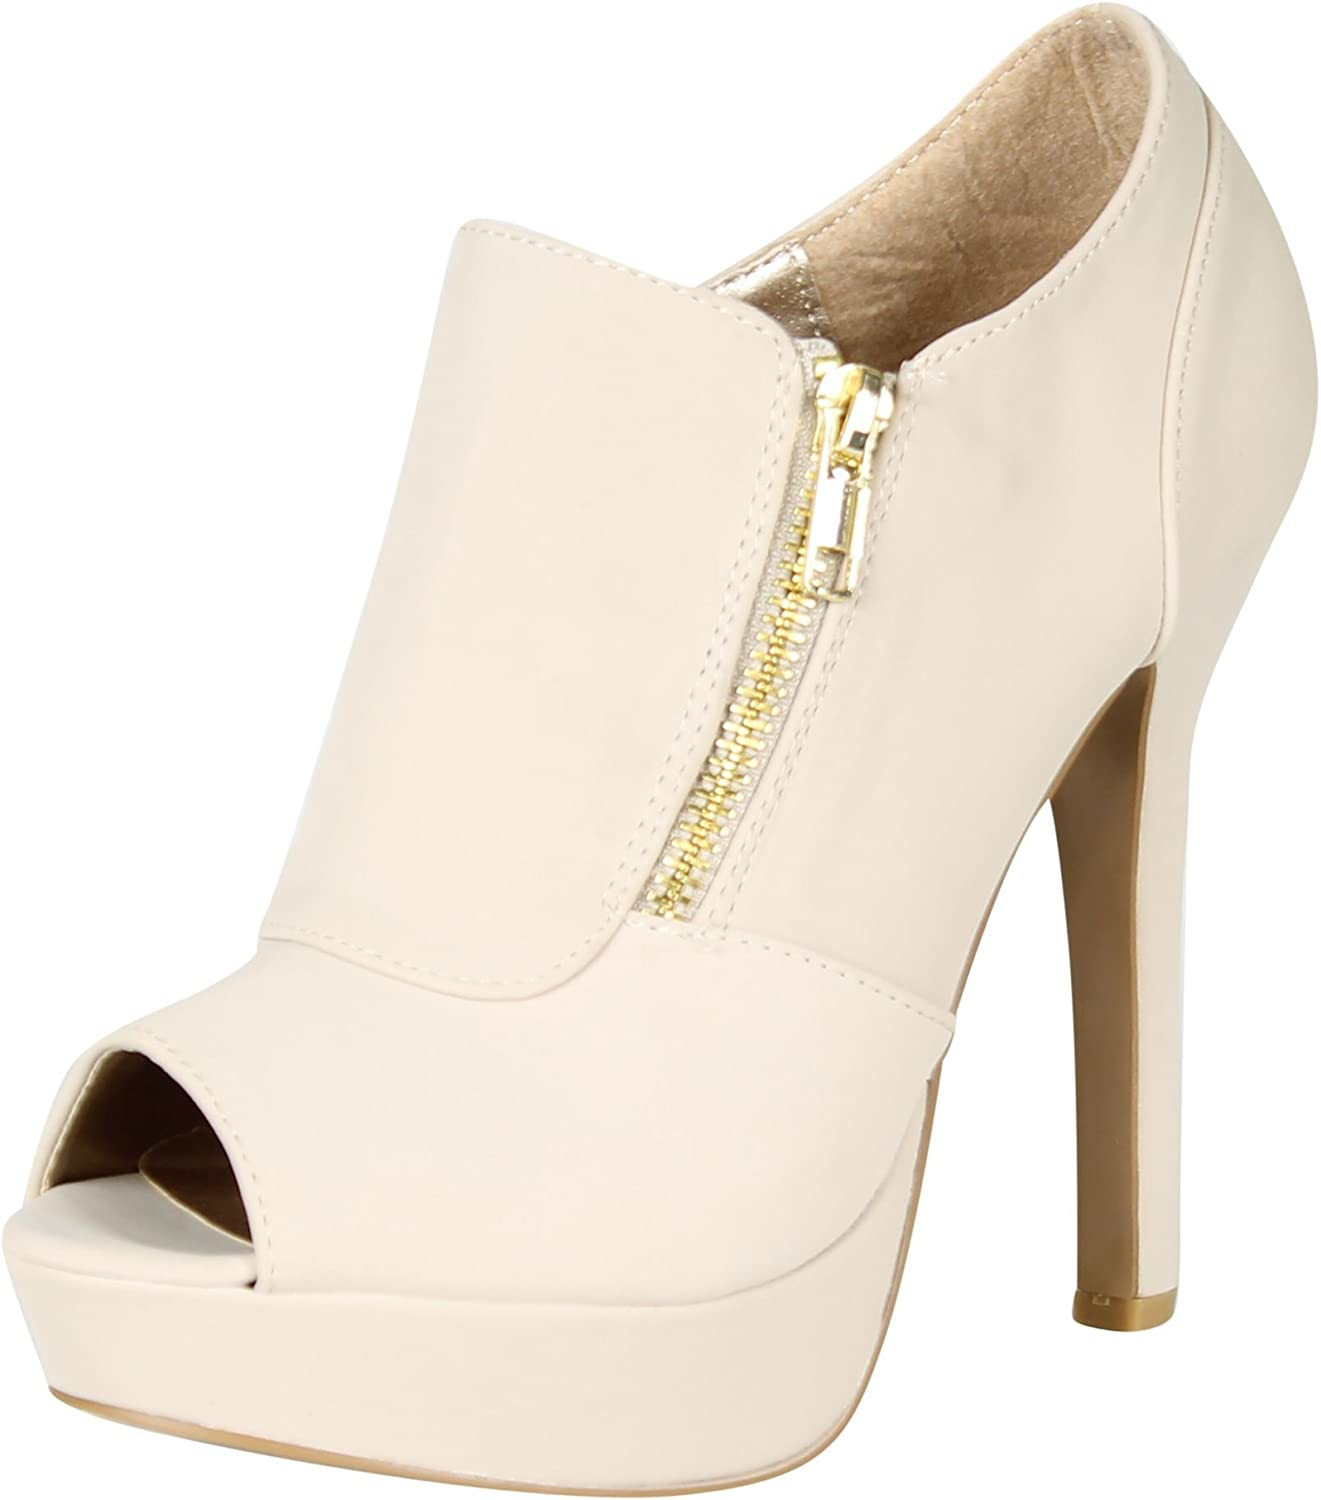 Qupid Women's Gaze-311 Pumps shoes